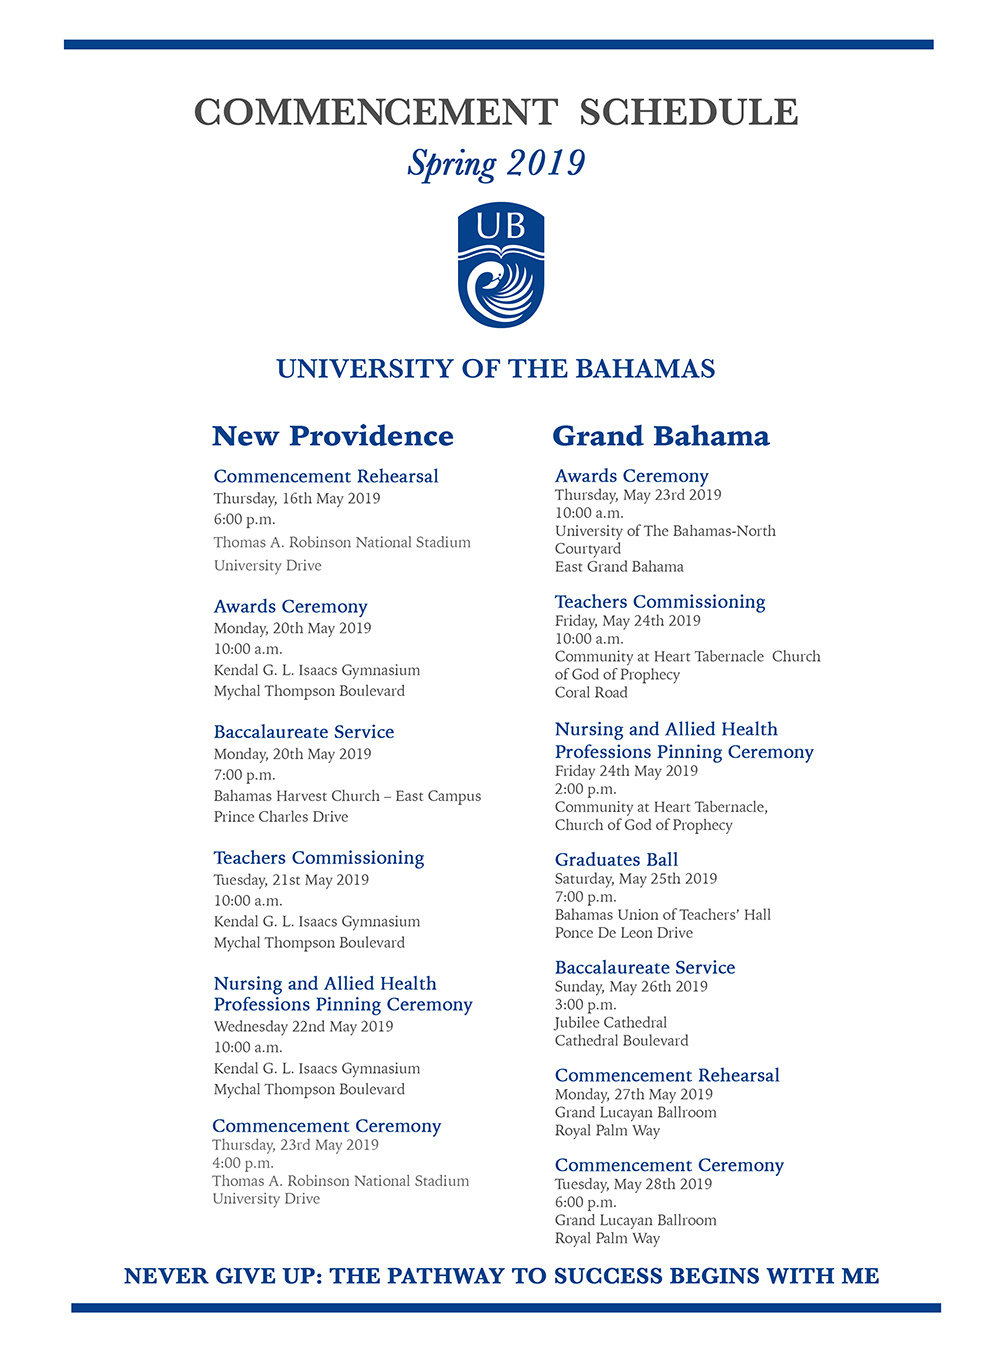 University of The Bahamas Commencement Schedule 2019